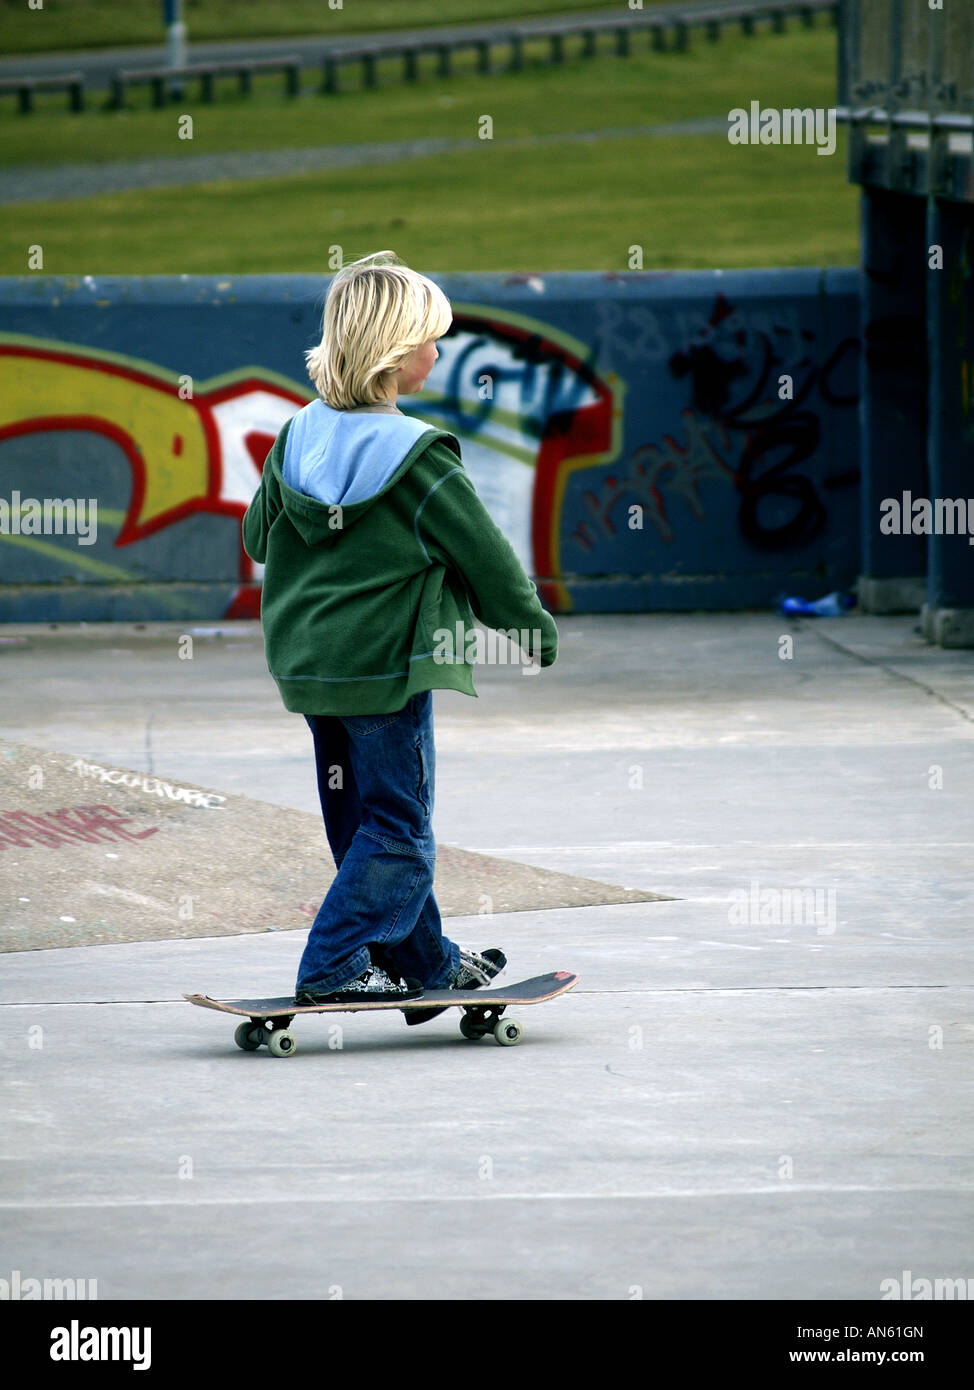 Blonde haired boy on a skateboard in a skate park. - Stock Image